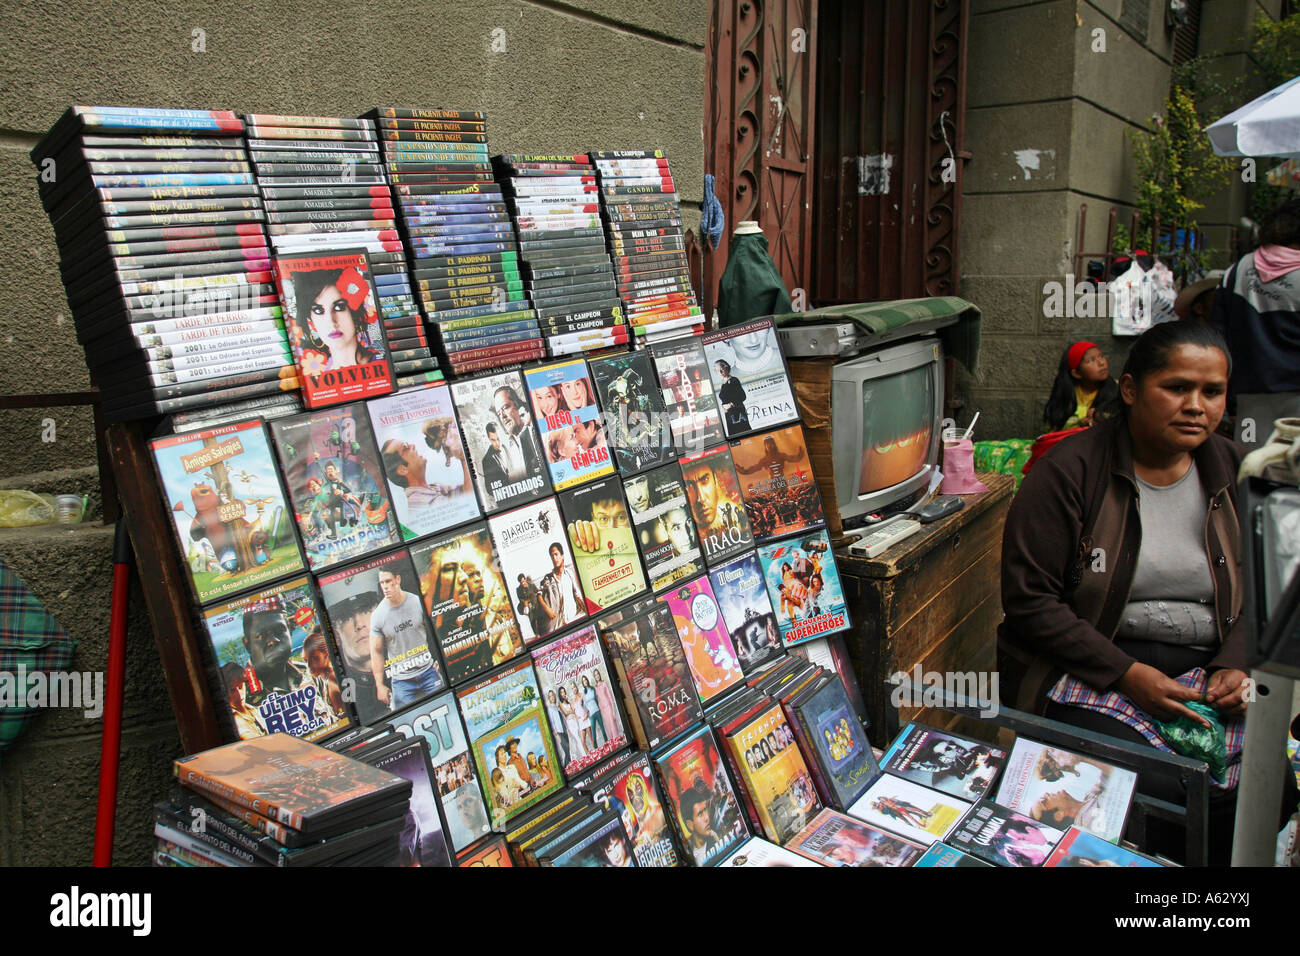 Pirate Dvds Stock Photos & Pirate Dvds Stock Images - Alamy